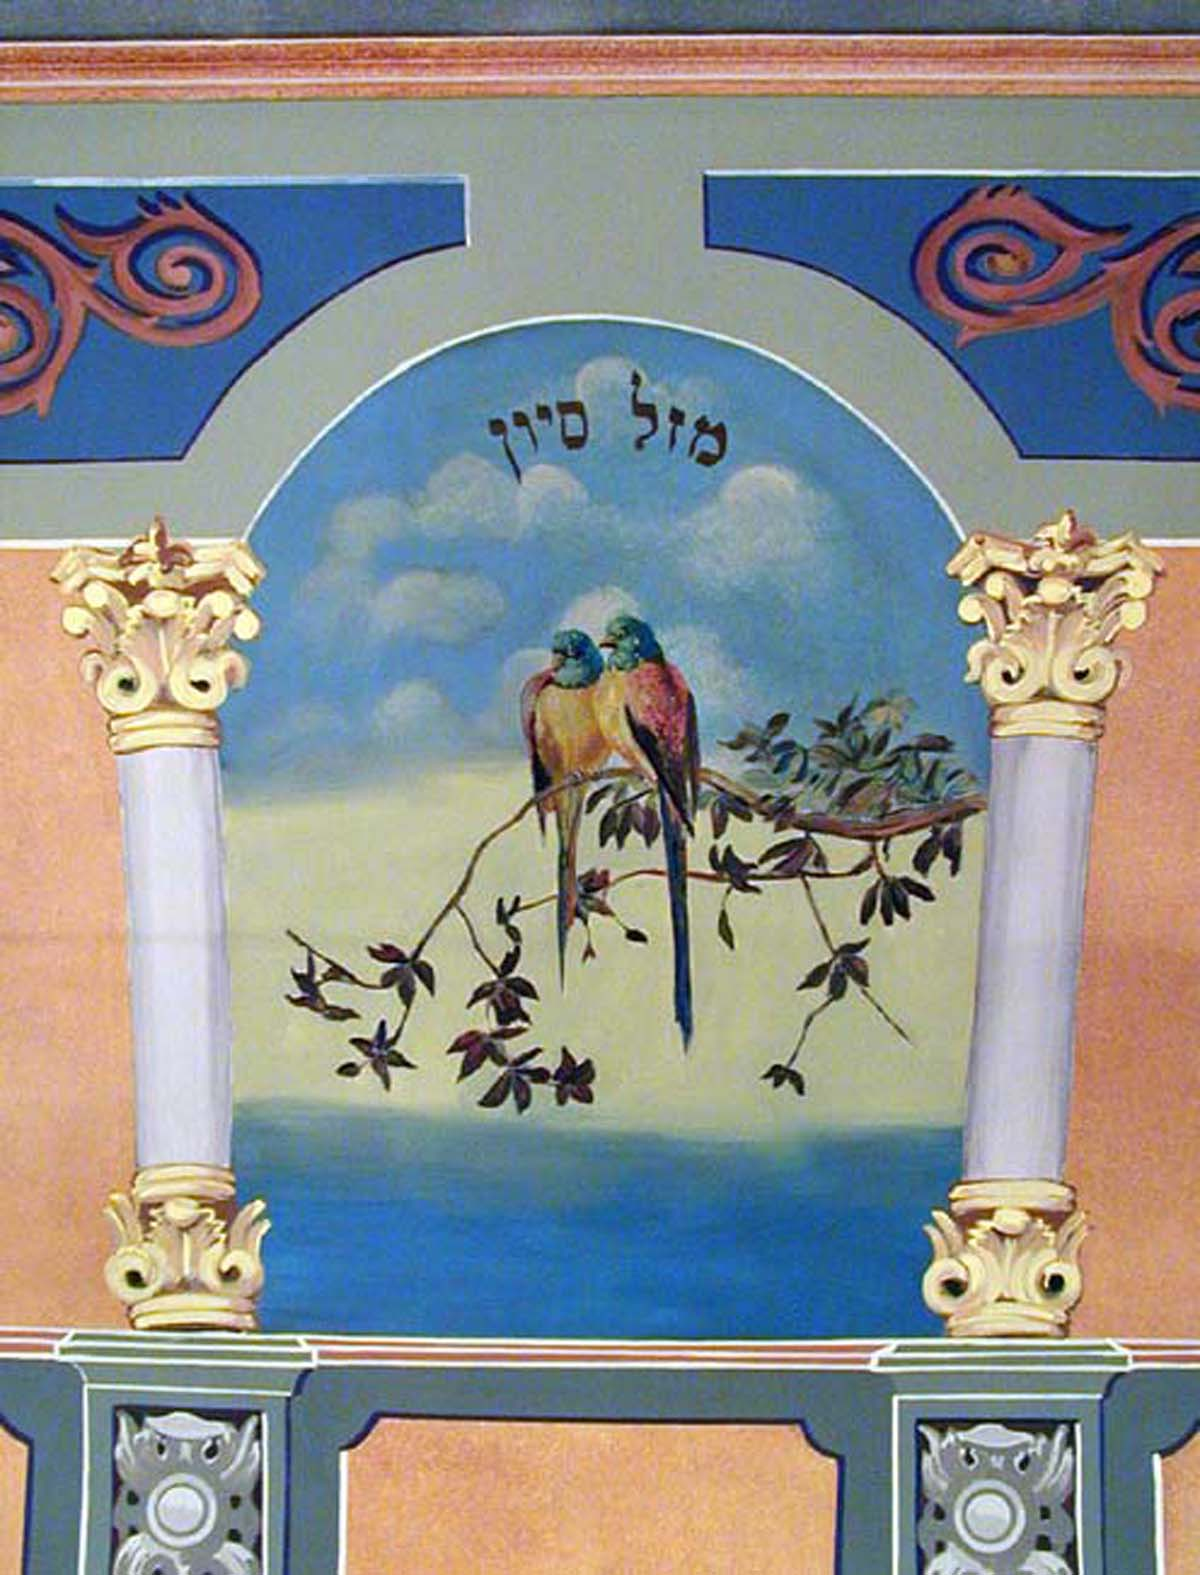 Sivan - Gemini The Twins - The Bialystoker Synagogue